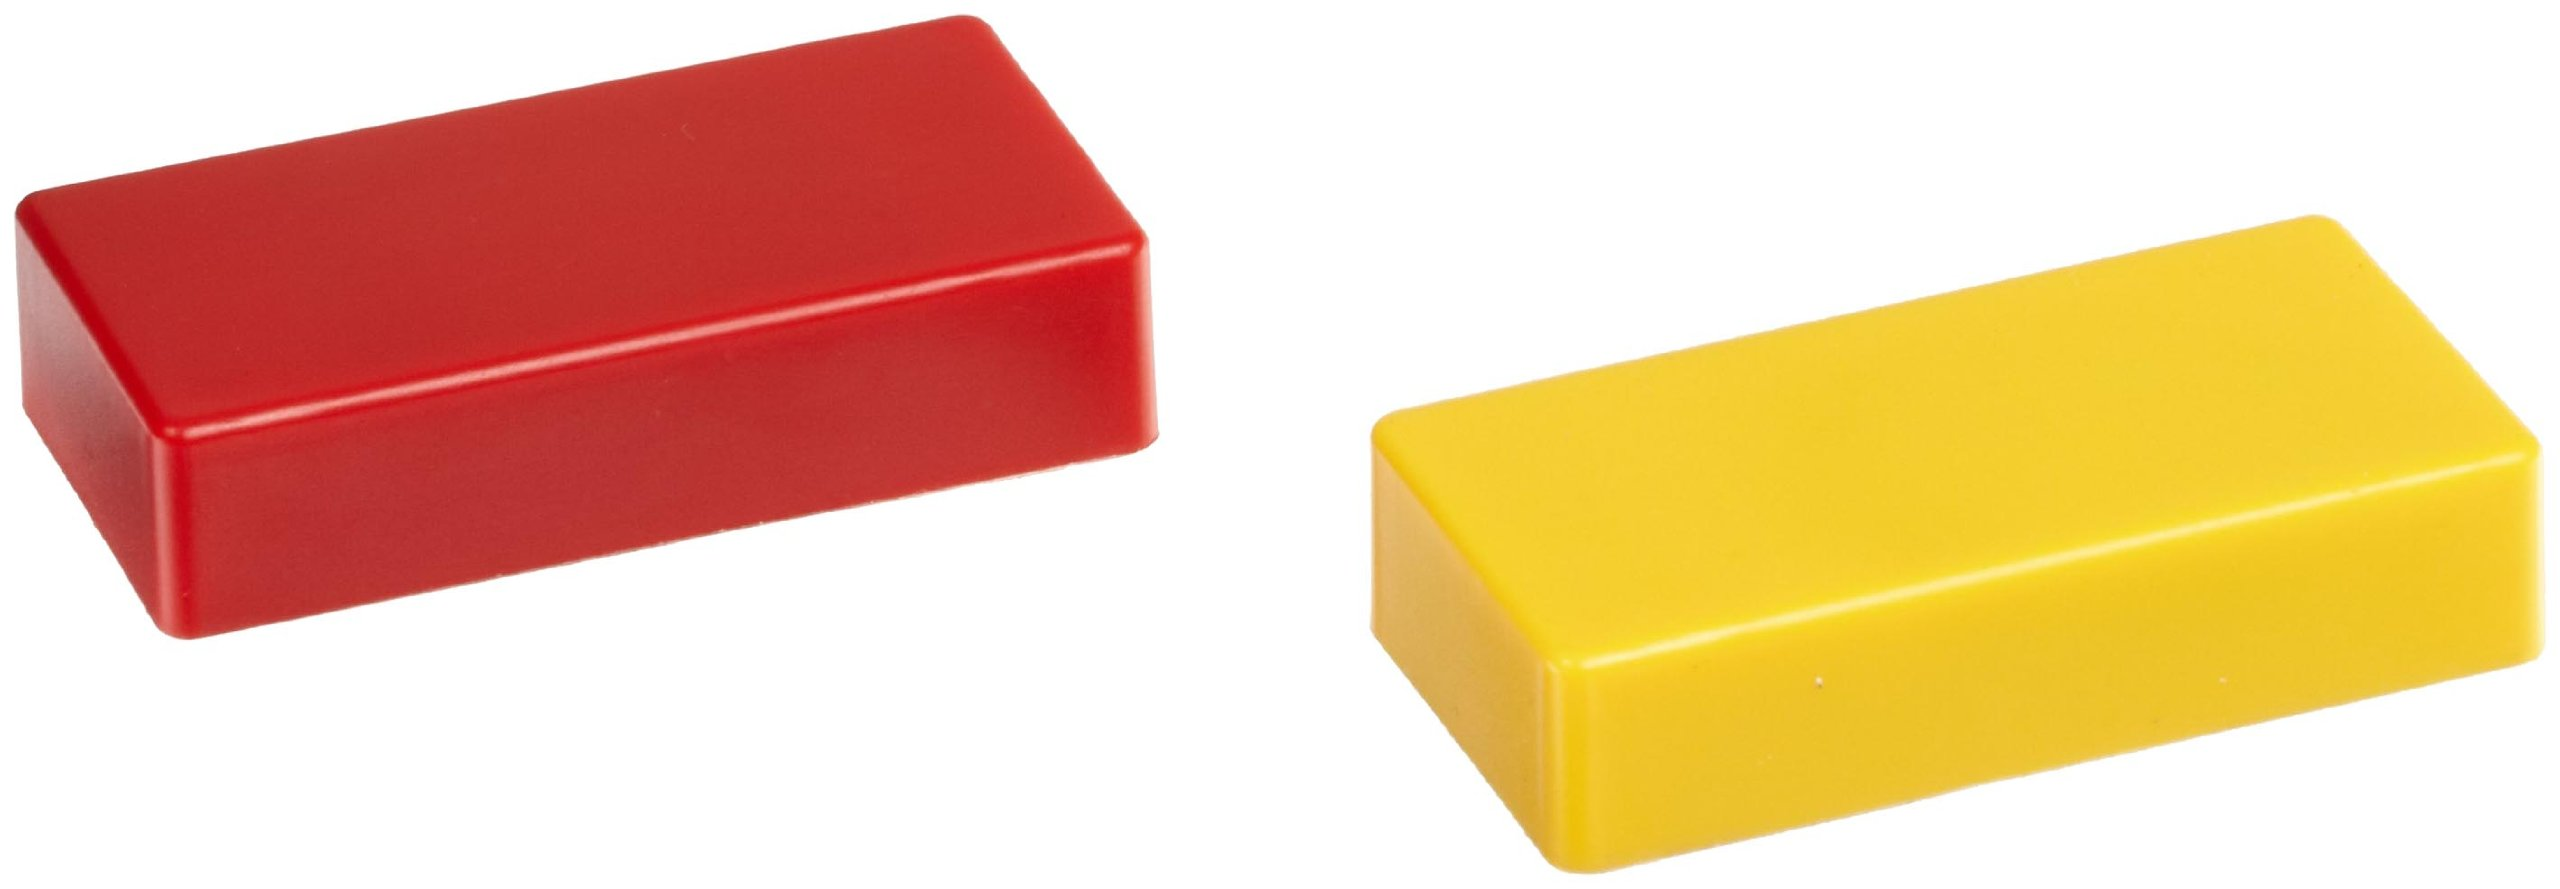 Hold Everything Magnet, Ceramic Block Magnet in Red &Yellow Plastic (1 of each Color)